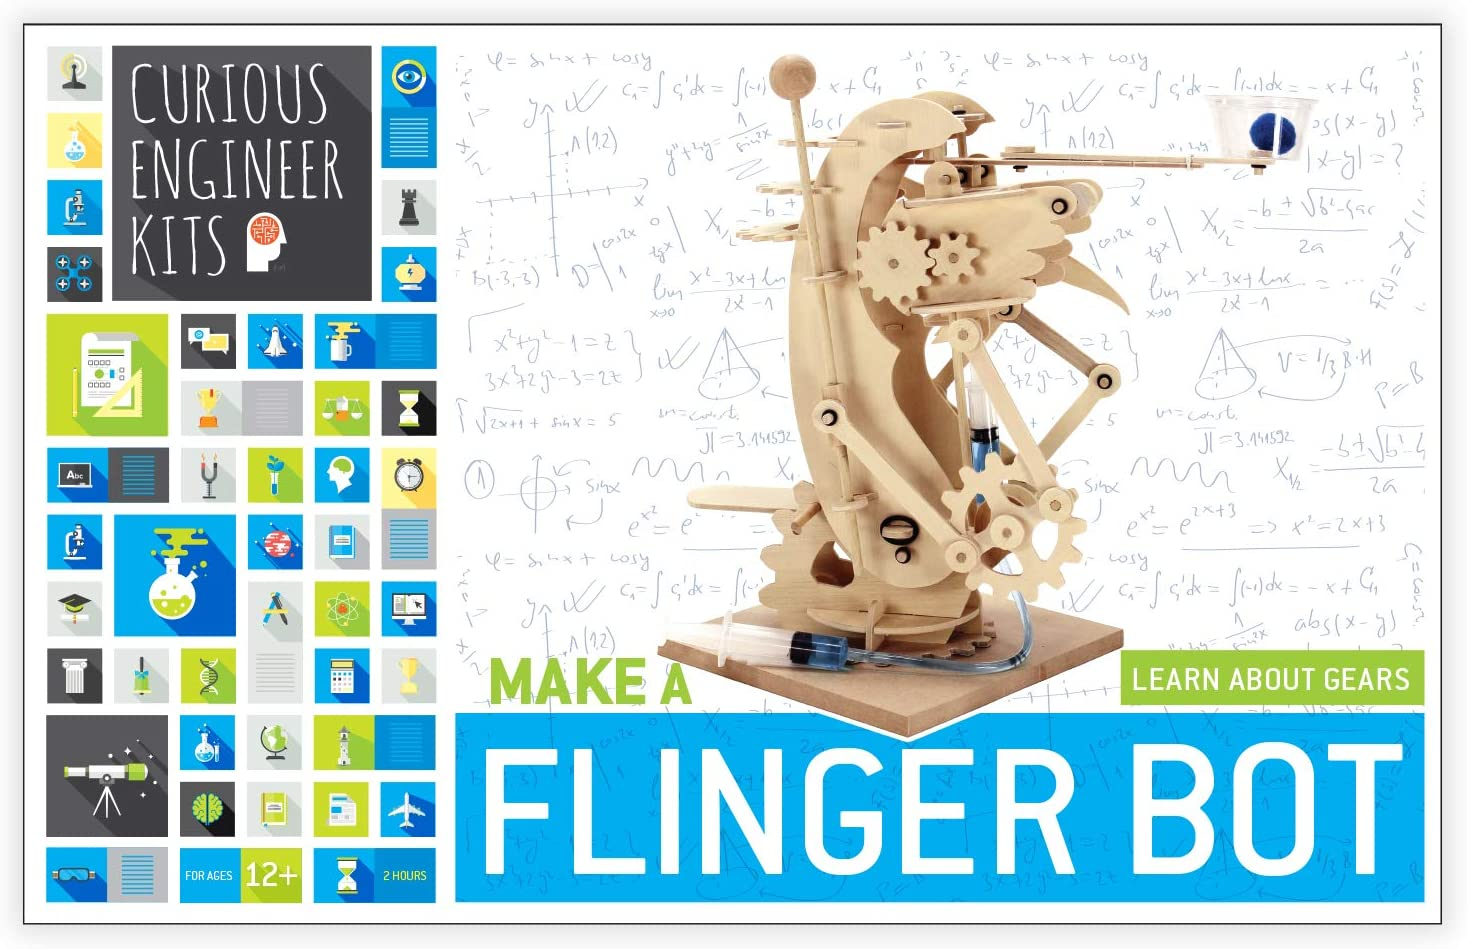 Make a Flinger Bot Kit   Facts and easy instructions included   Copernicus Toys Curious Engineer Kit…